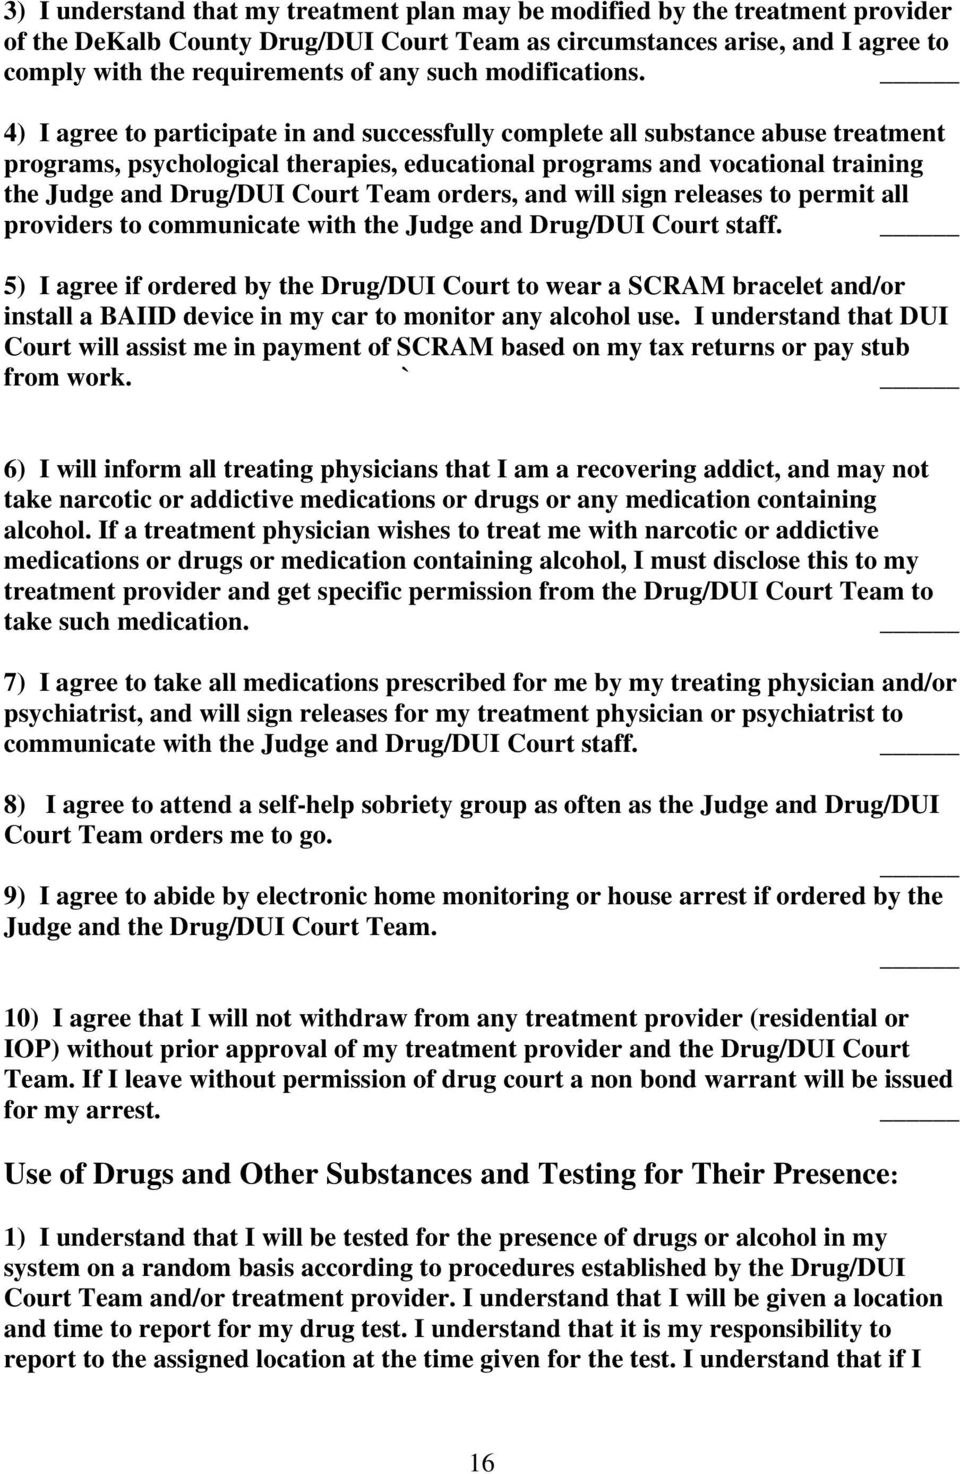 4) I agree to participate in and successfully complete all substance abuse treatment programs, psychological therapies, educational programs and vocational training the Judge and Drug/DUI Court Team